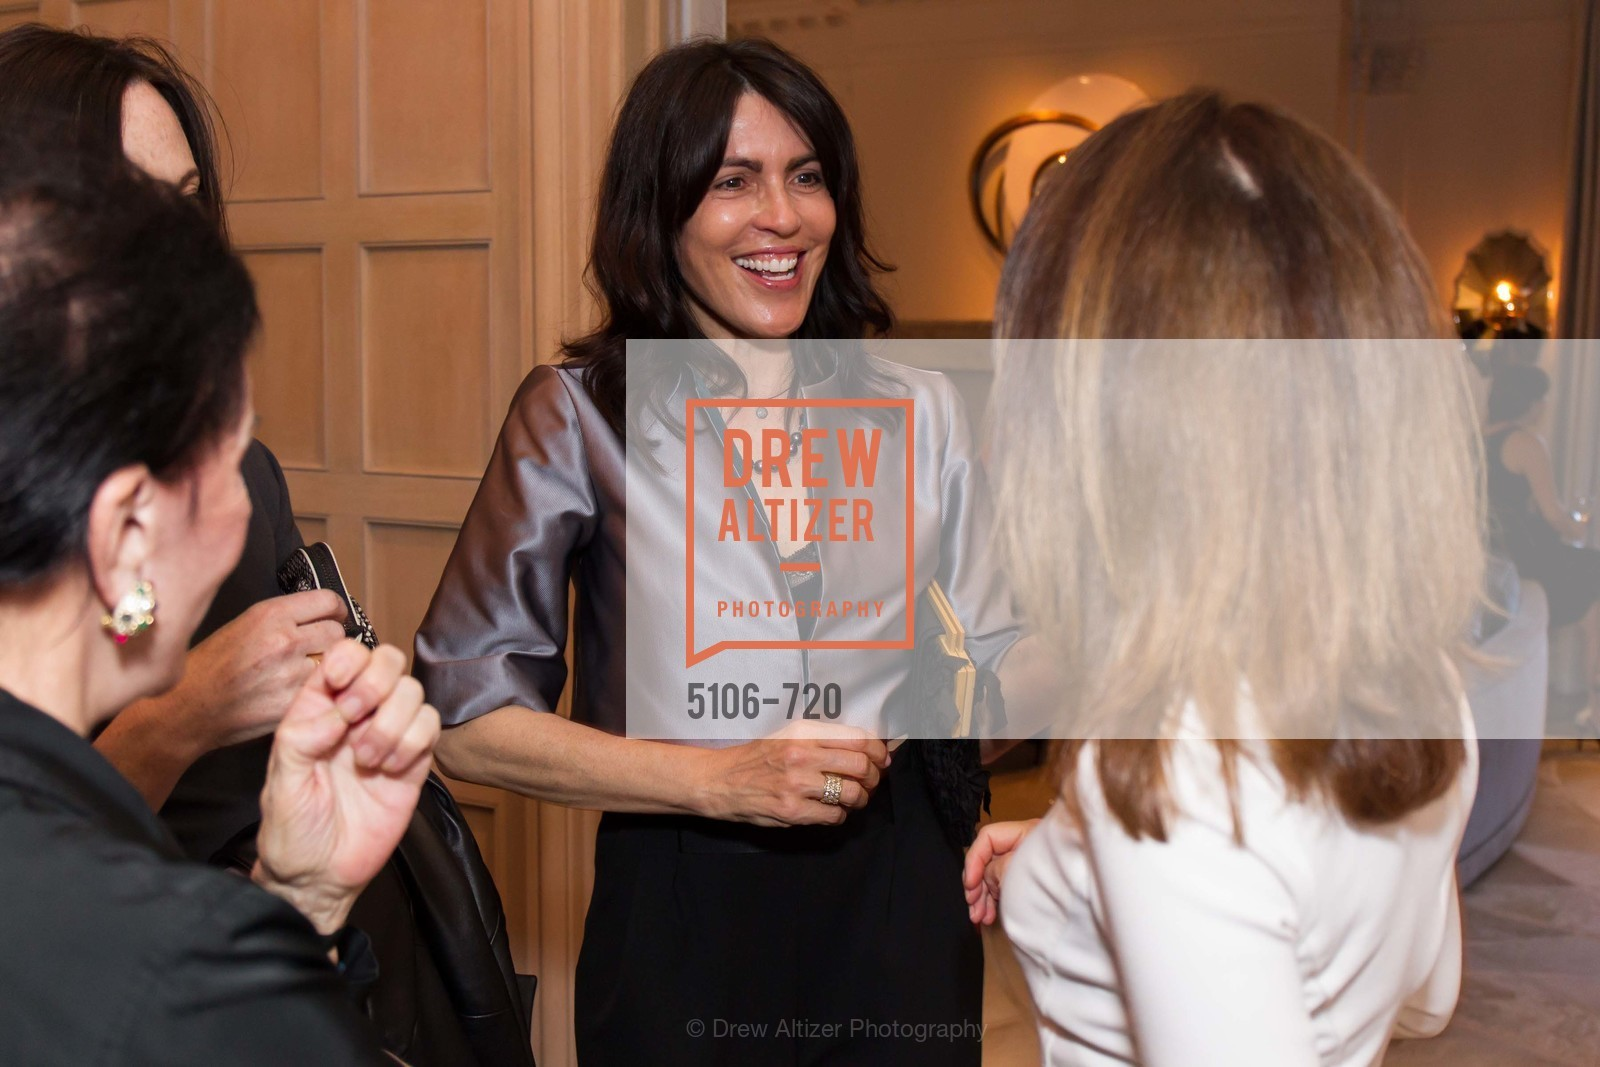 Alina DeAlbergaria, C MAGAZINE Editors Cocktail Party, US, May 12th, 2015,Drew Altizer, Drew Altizer Photography, full-service agency, private events, San Francisco photographer, photographer california